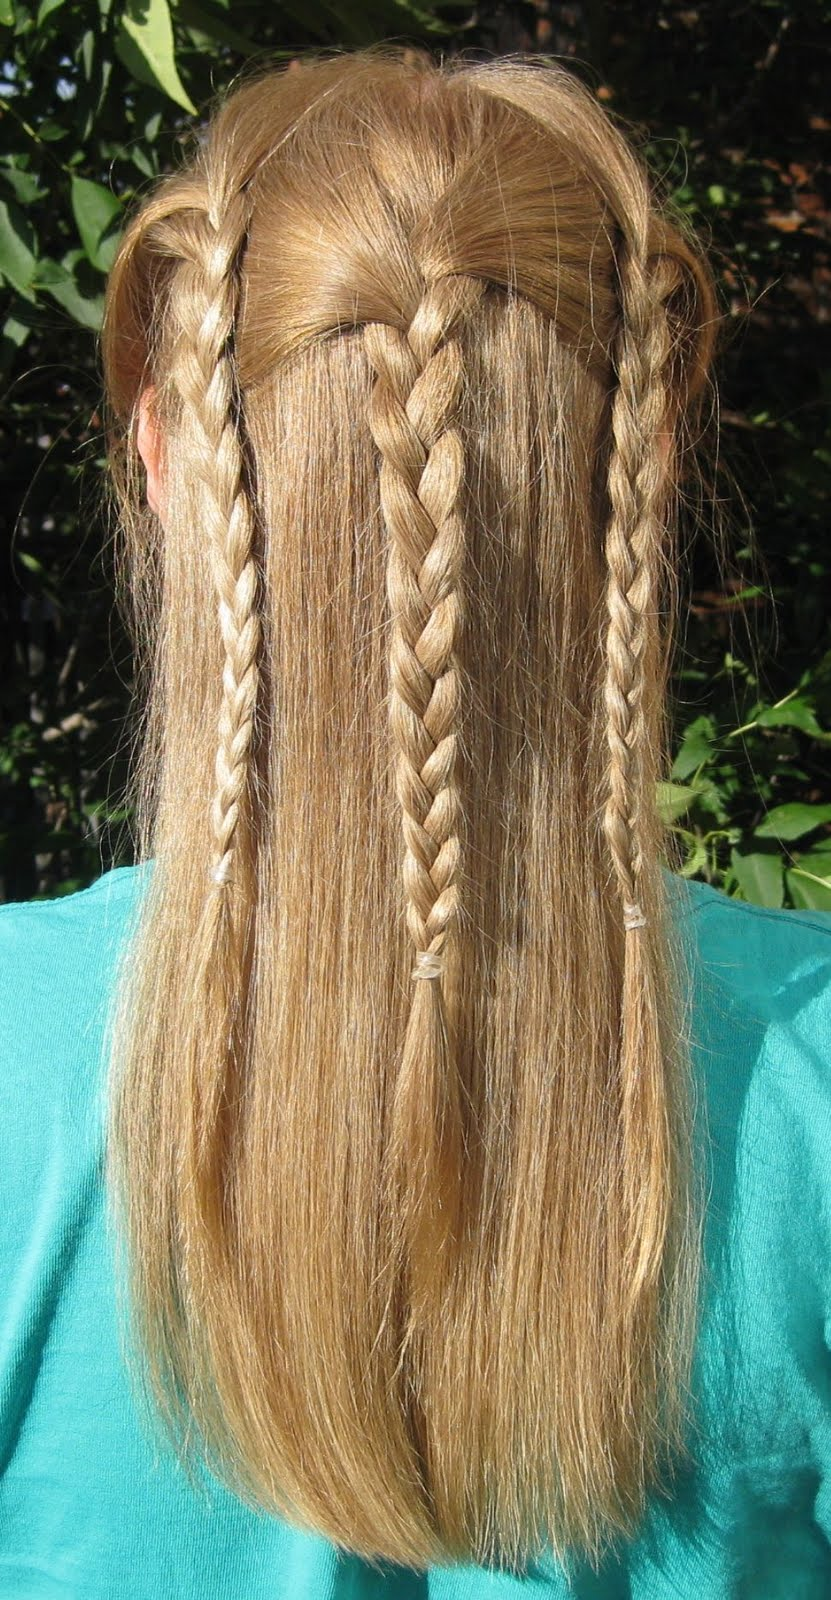 my bumpy middle aged long hair journey: hairstyle how-to: 3 braid